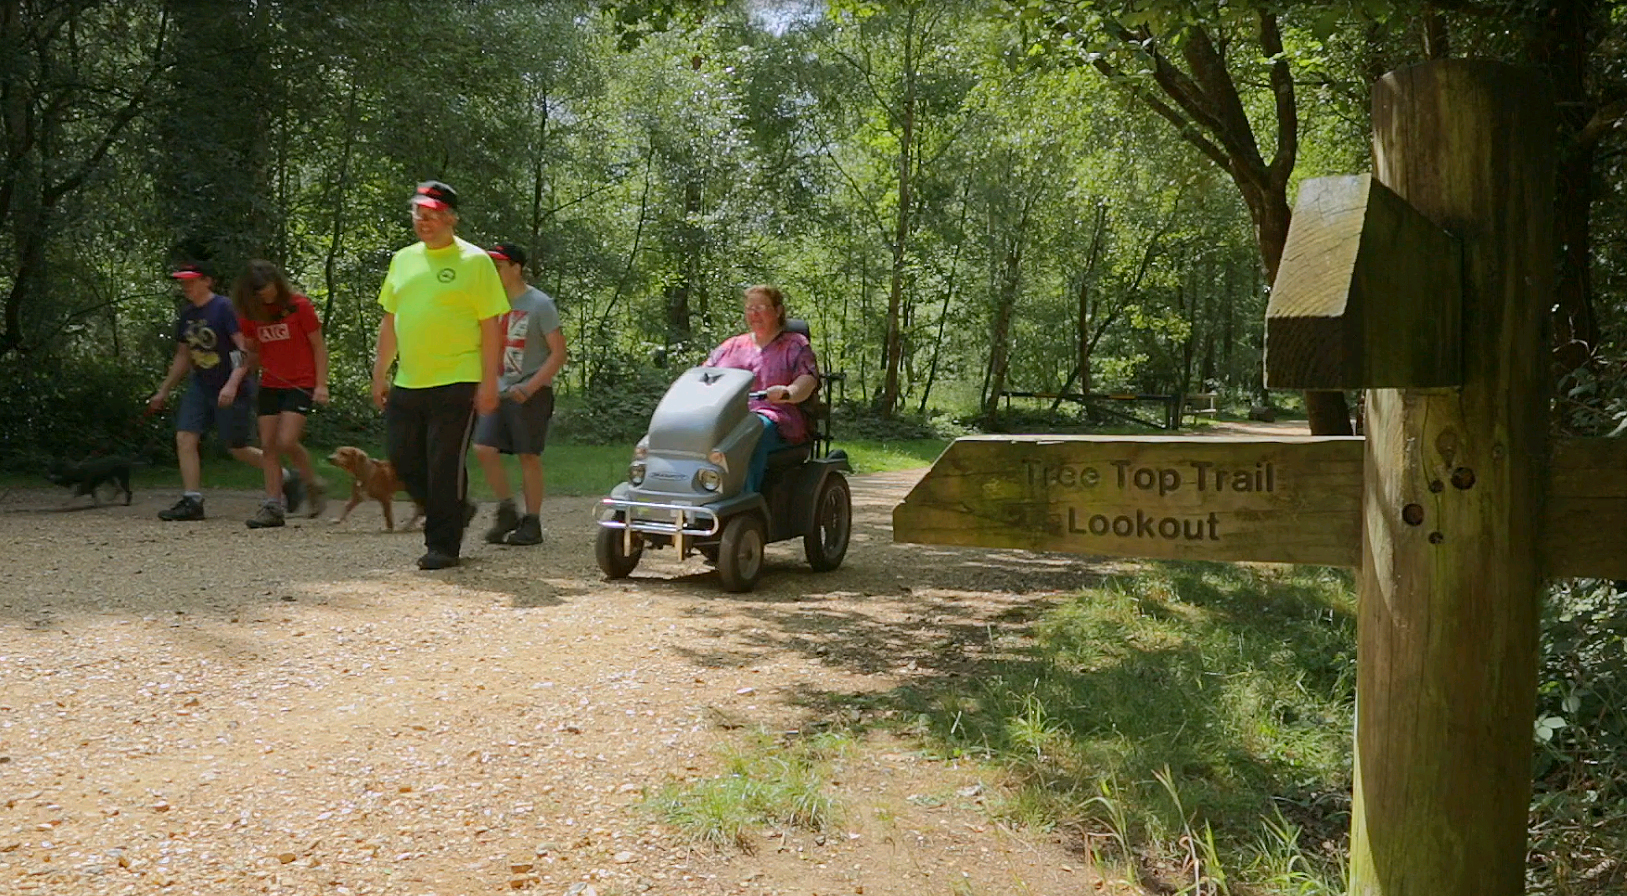 Try something new at Moors Valley on Disabled Access Day